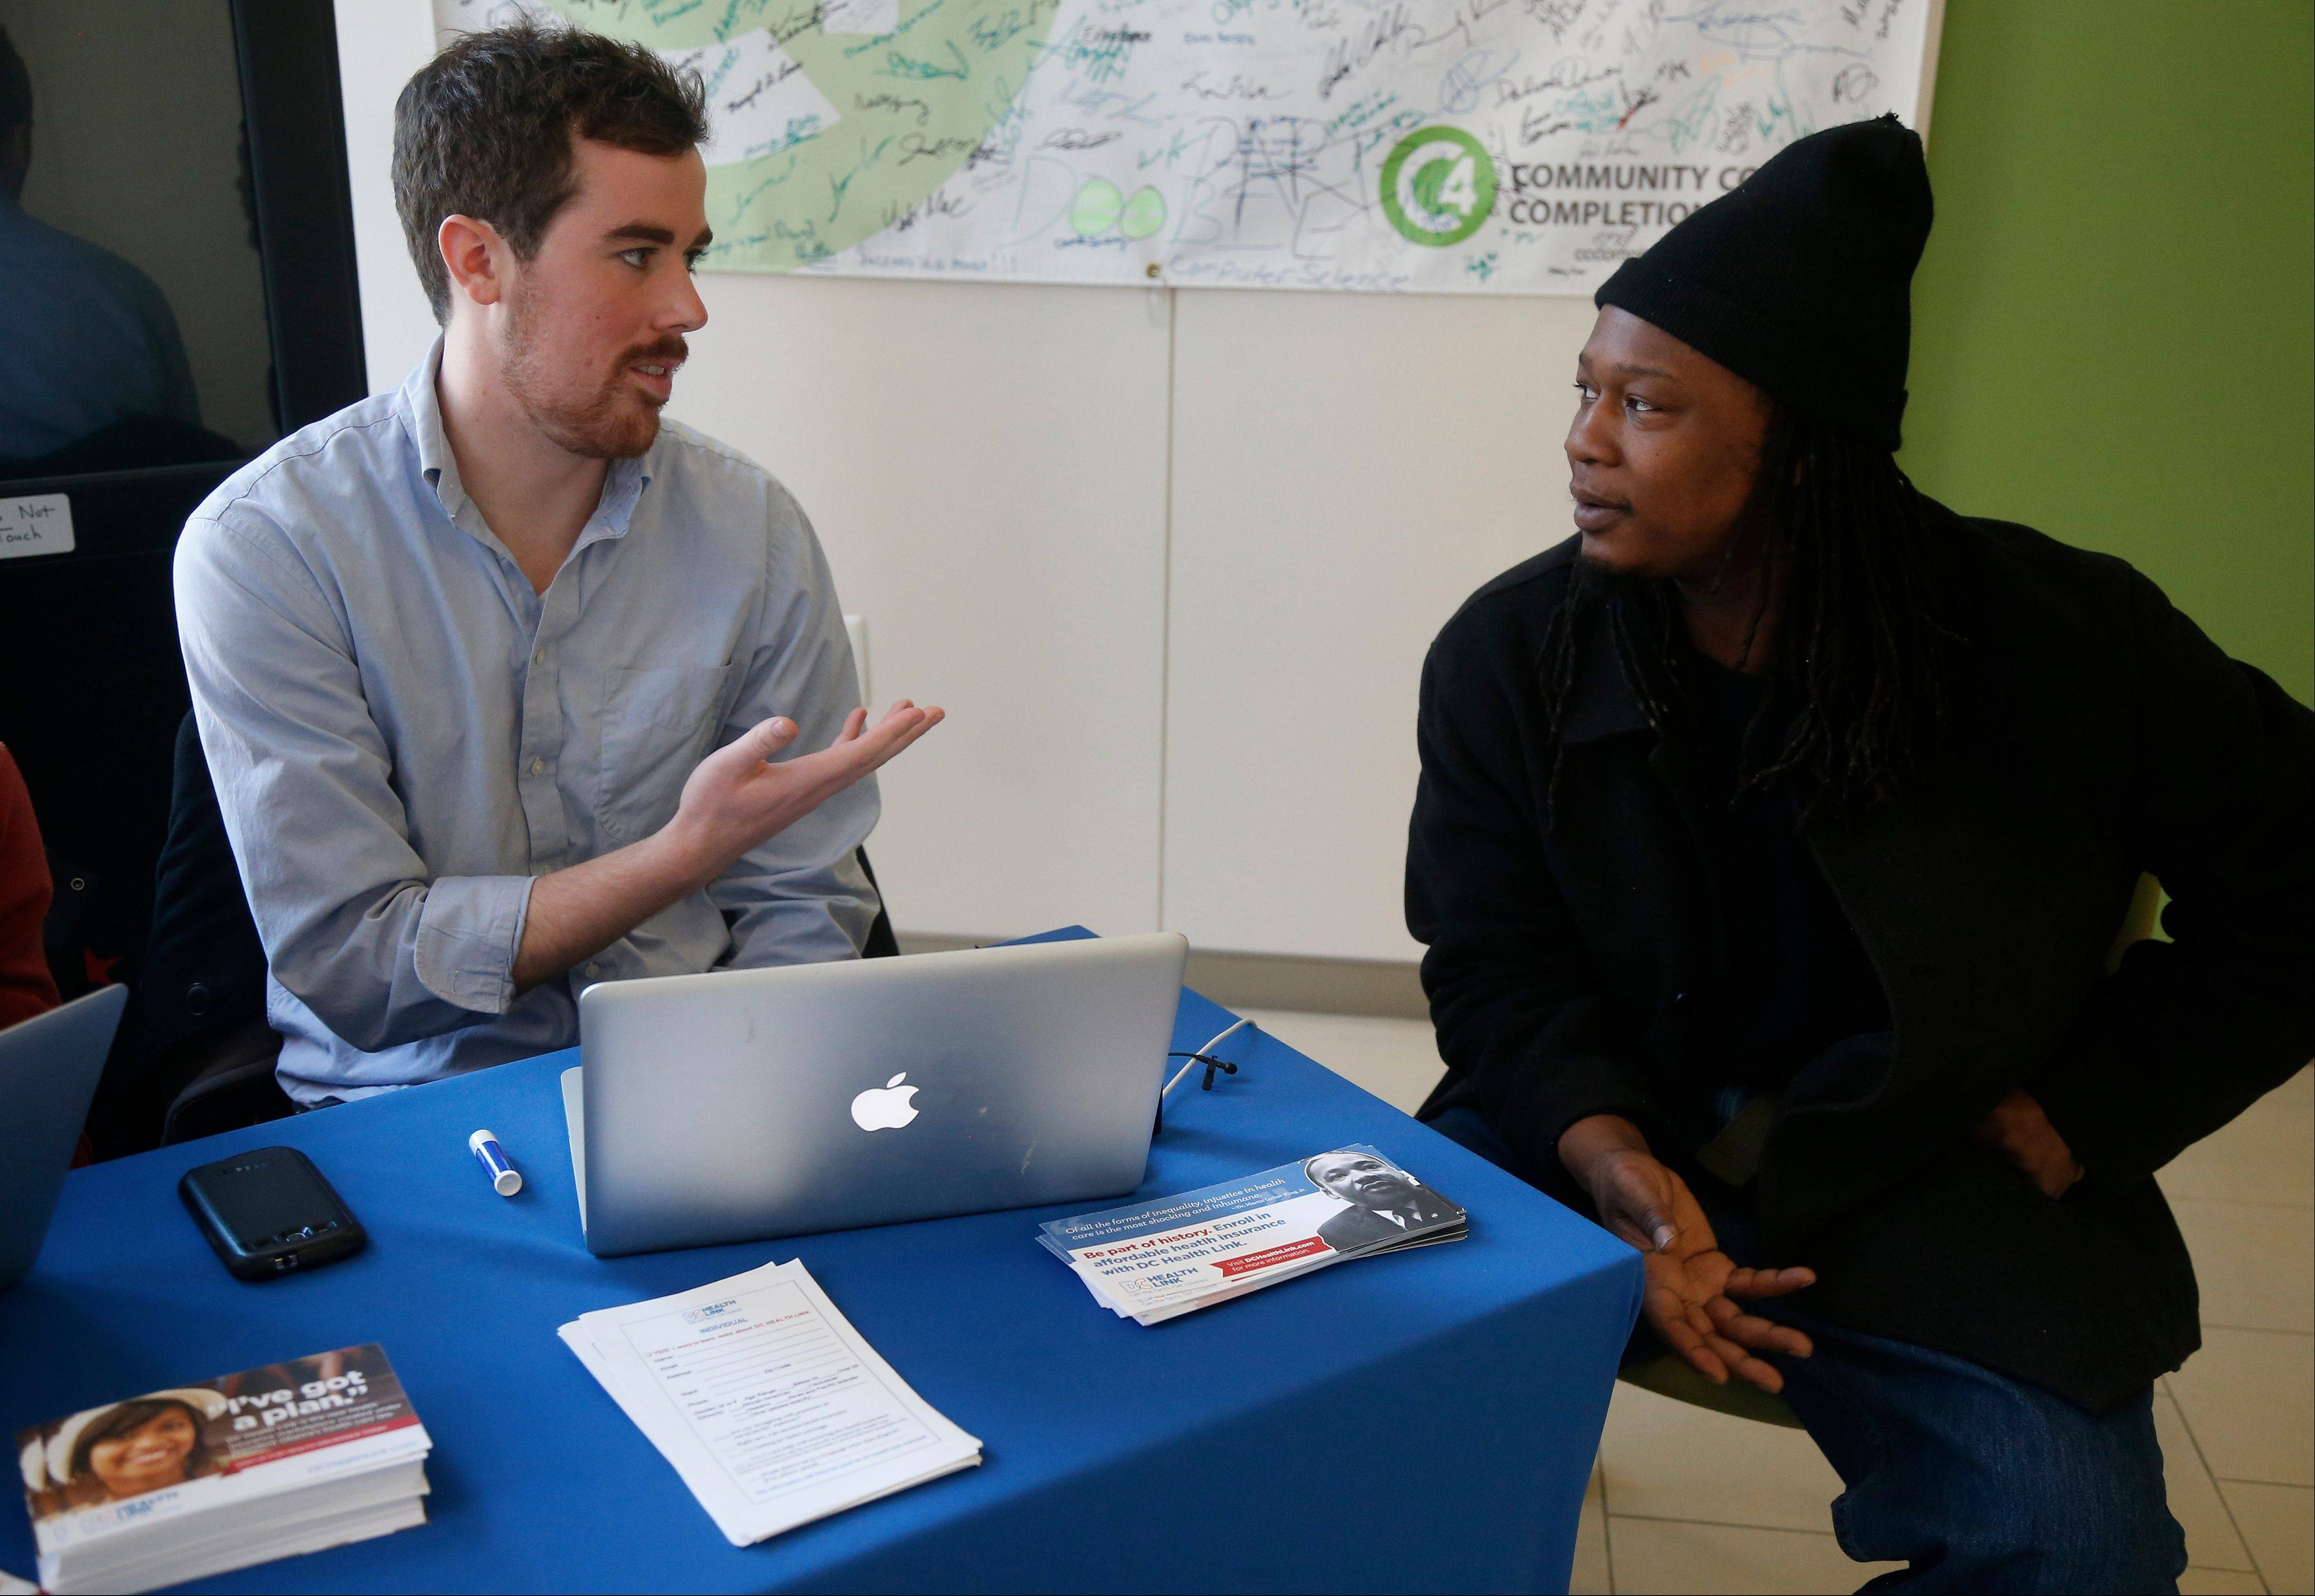 David Bransfield, a state outreach coordinator for Young Invincibles, a group which supports President Barack Obama's health care law, talks with student Philippe Komongnan, 27, who is in the process of signing up for health care, at the University of the District of Columbia in Washington.